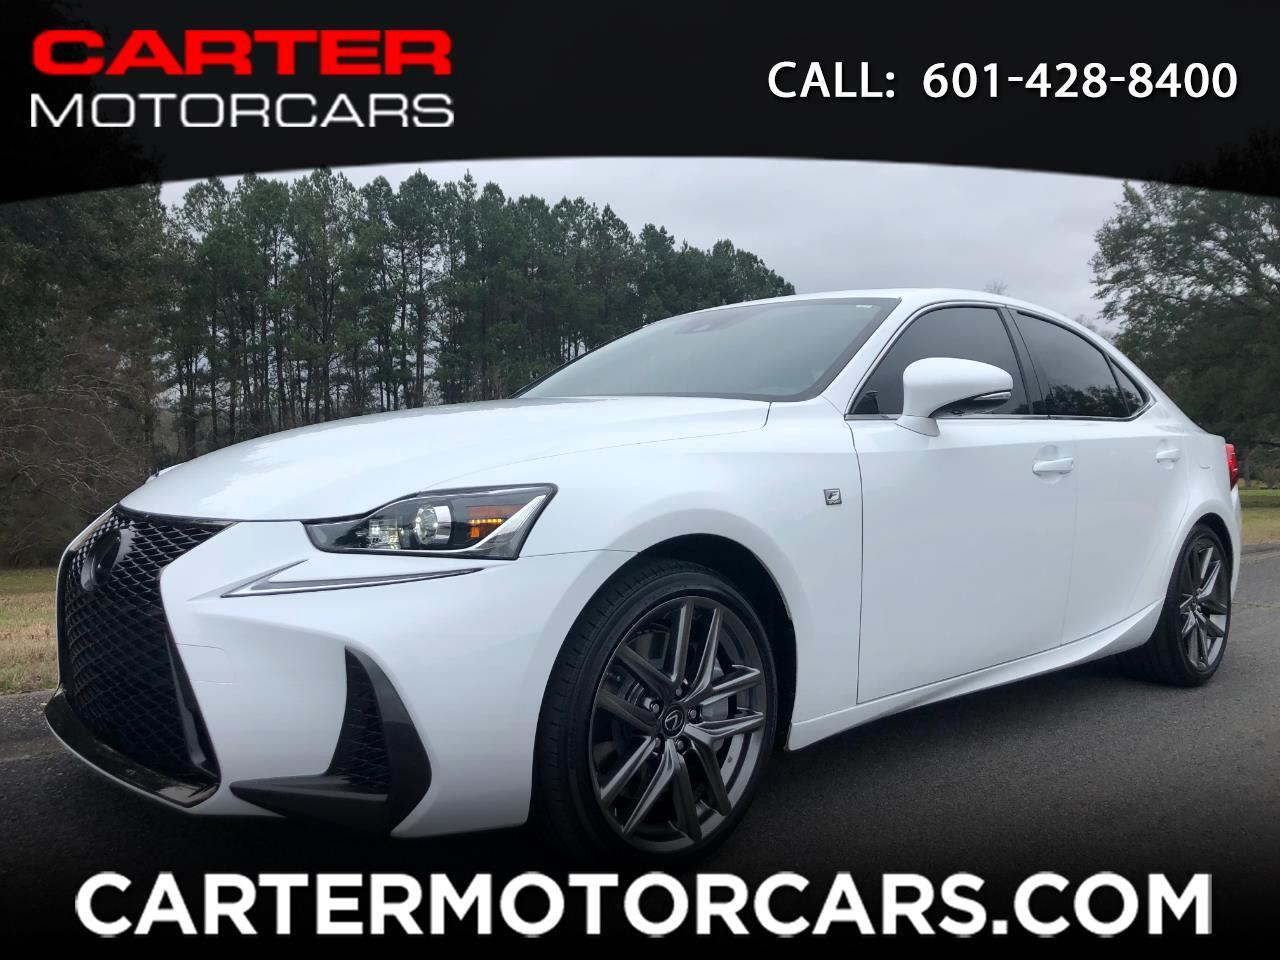 2018 Lexus IS 350 F-Sport